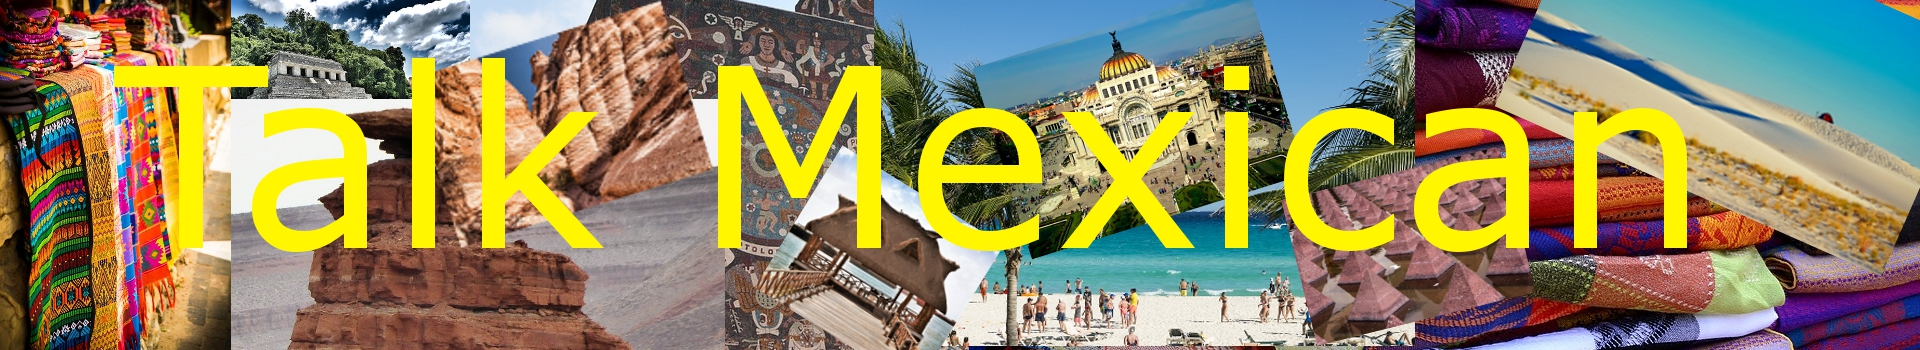 I am American, living in Mexico. I plan to teach English to some Mexican adults.?